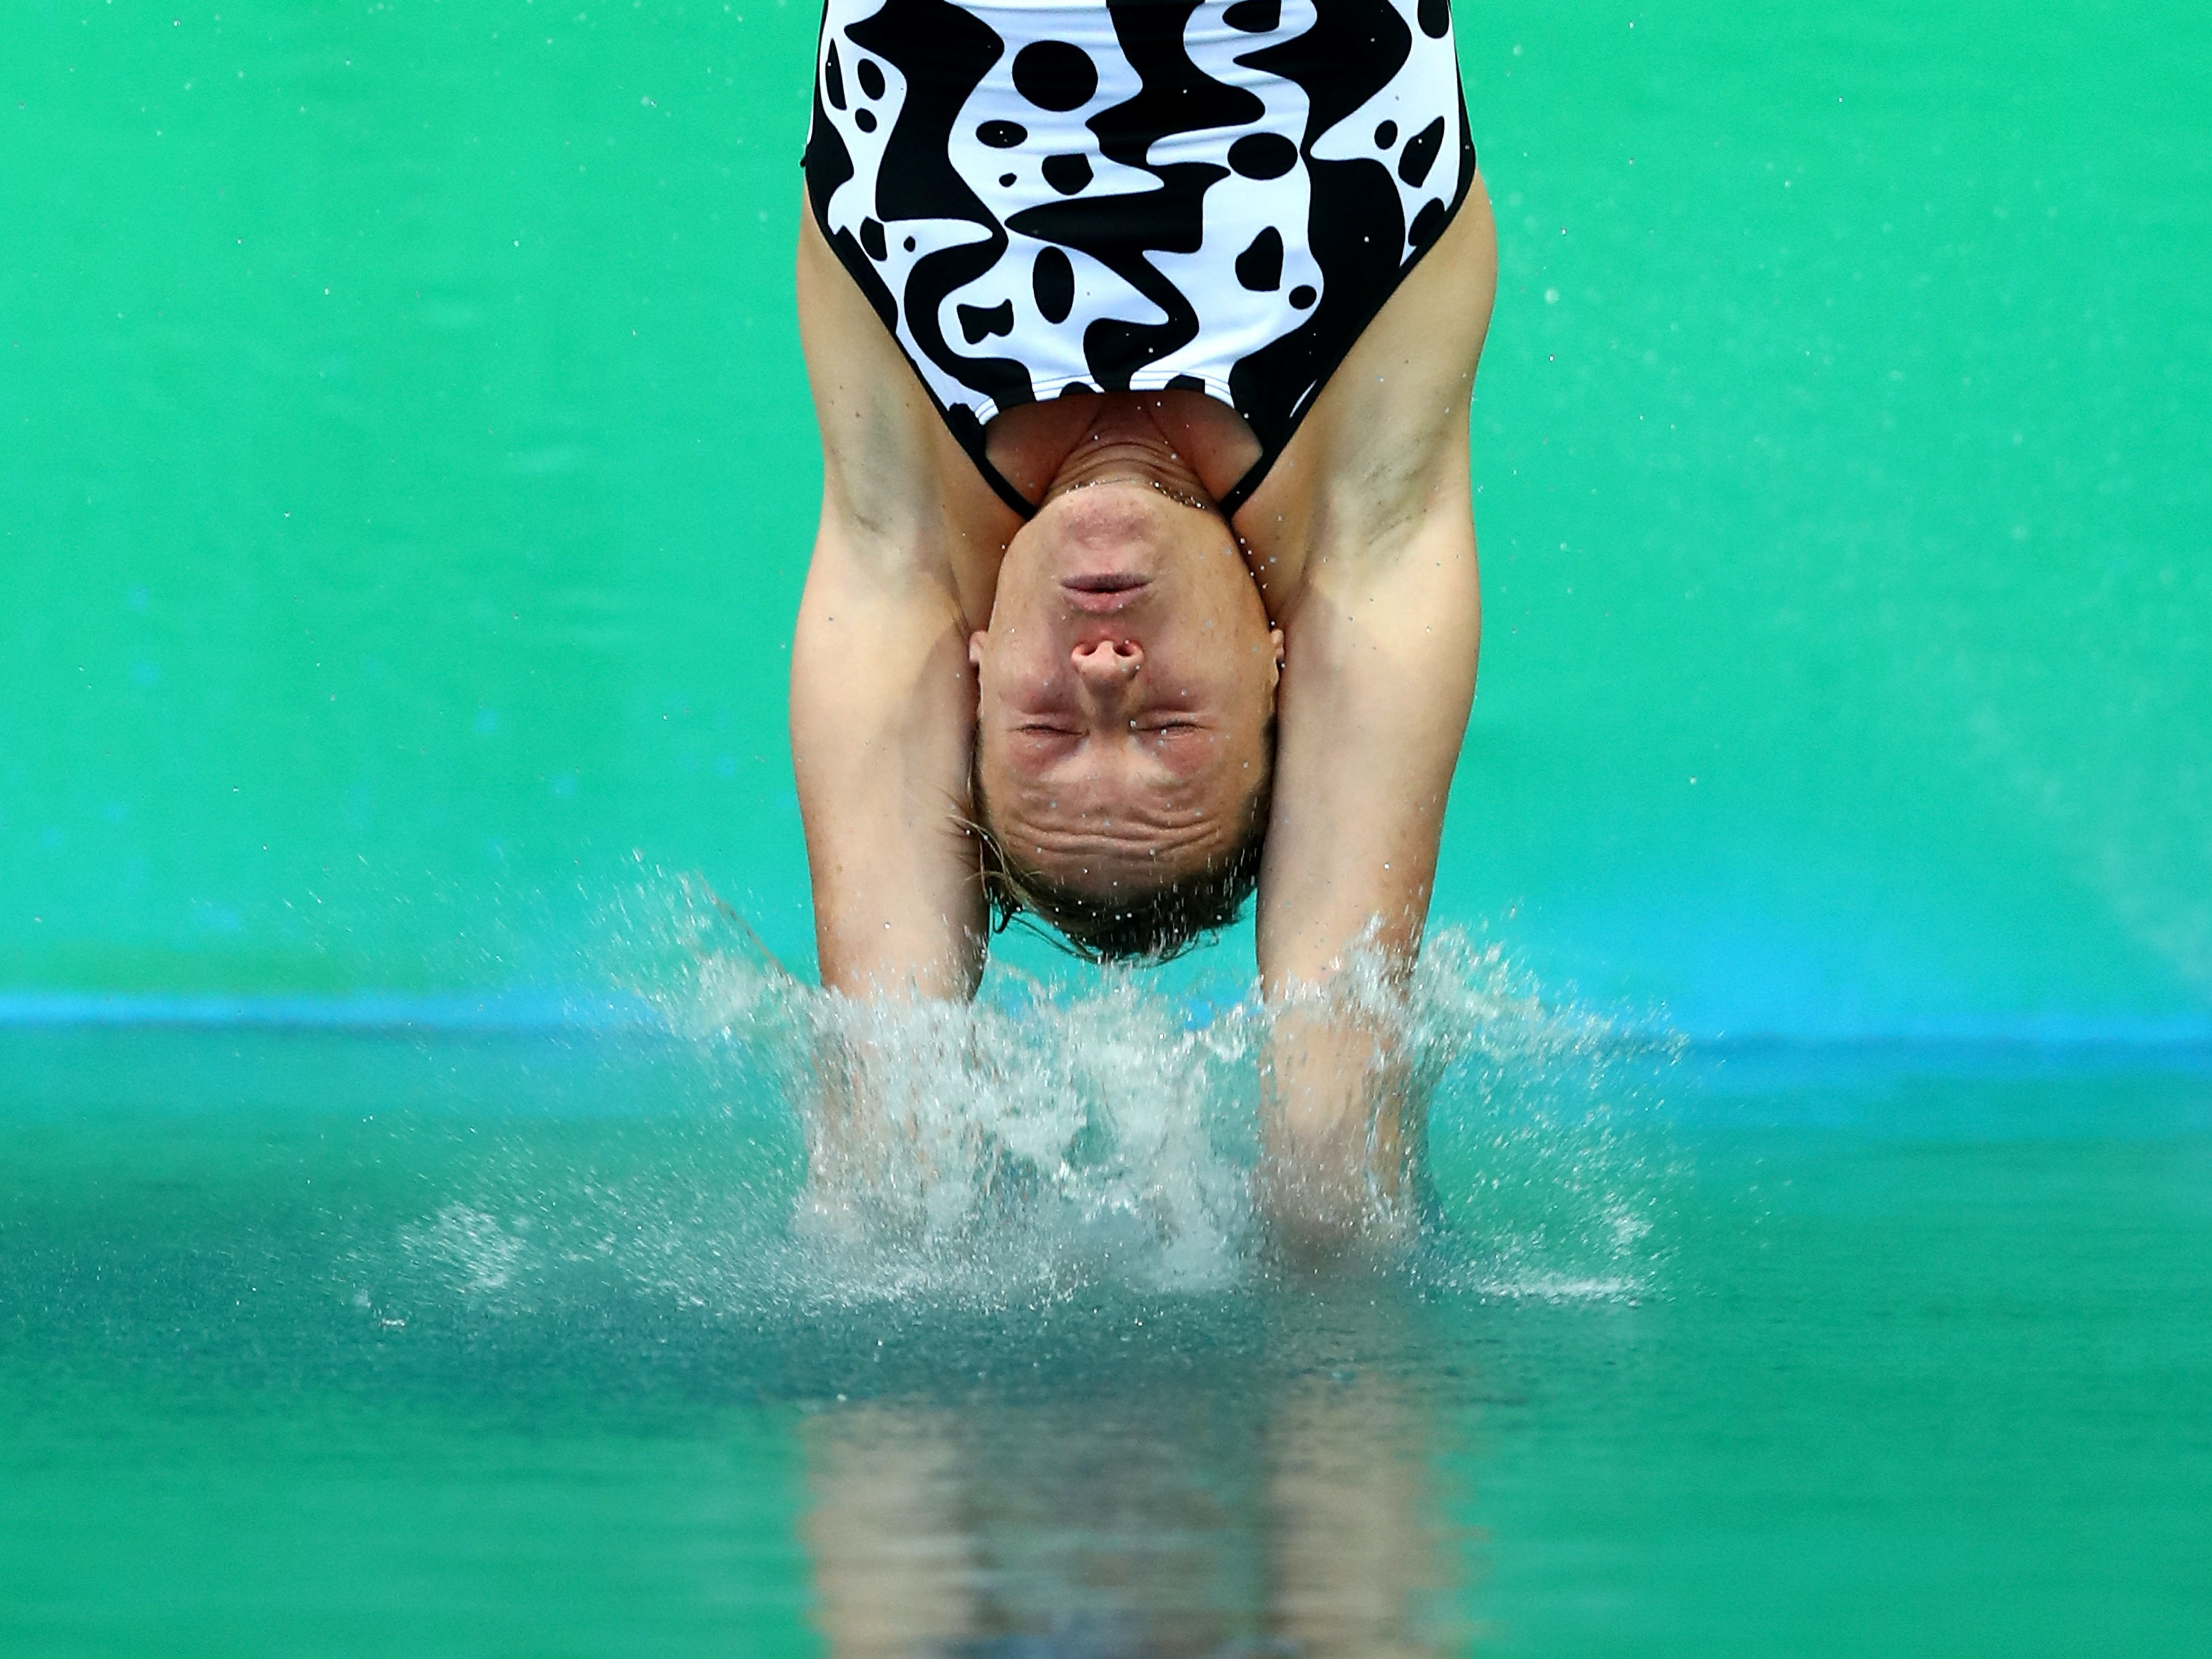 RIO DE JANEIRO, BRAZIL - AUGUST 12:  Maria Elisabetta Marconi of Italy competes in the Women's Diving 3m Springboard Preliminary Round on Day 7 of the Rio 2016 Olympic Games at Maria Lenk Aquatics Centre on August 12, 2016 in Rio de Janeiro, Brazil.  (Photo by Dean Mouhtaropoulos/Getty Images)